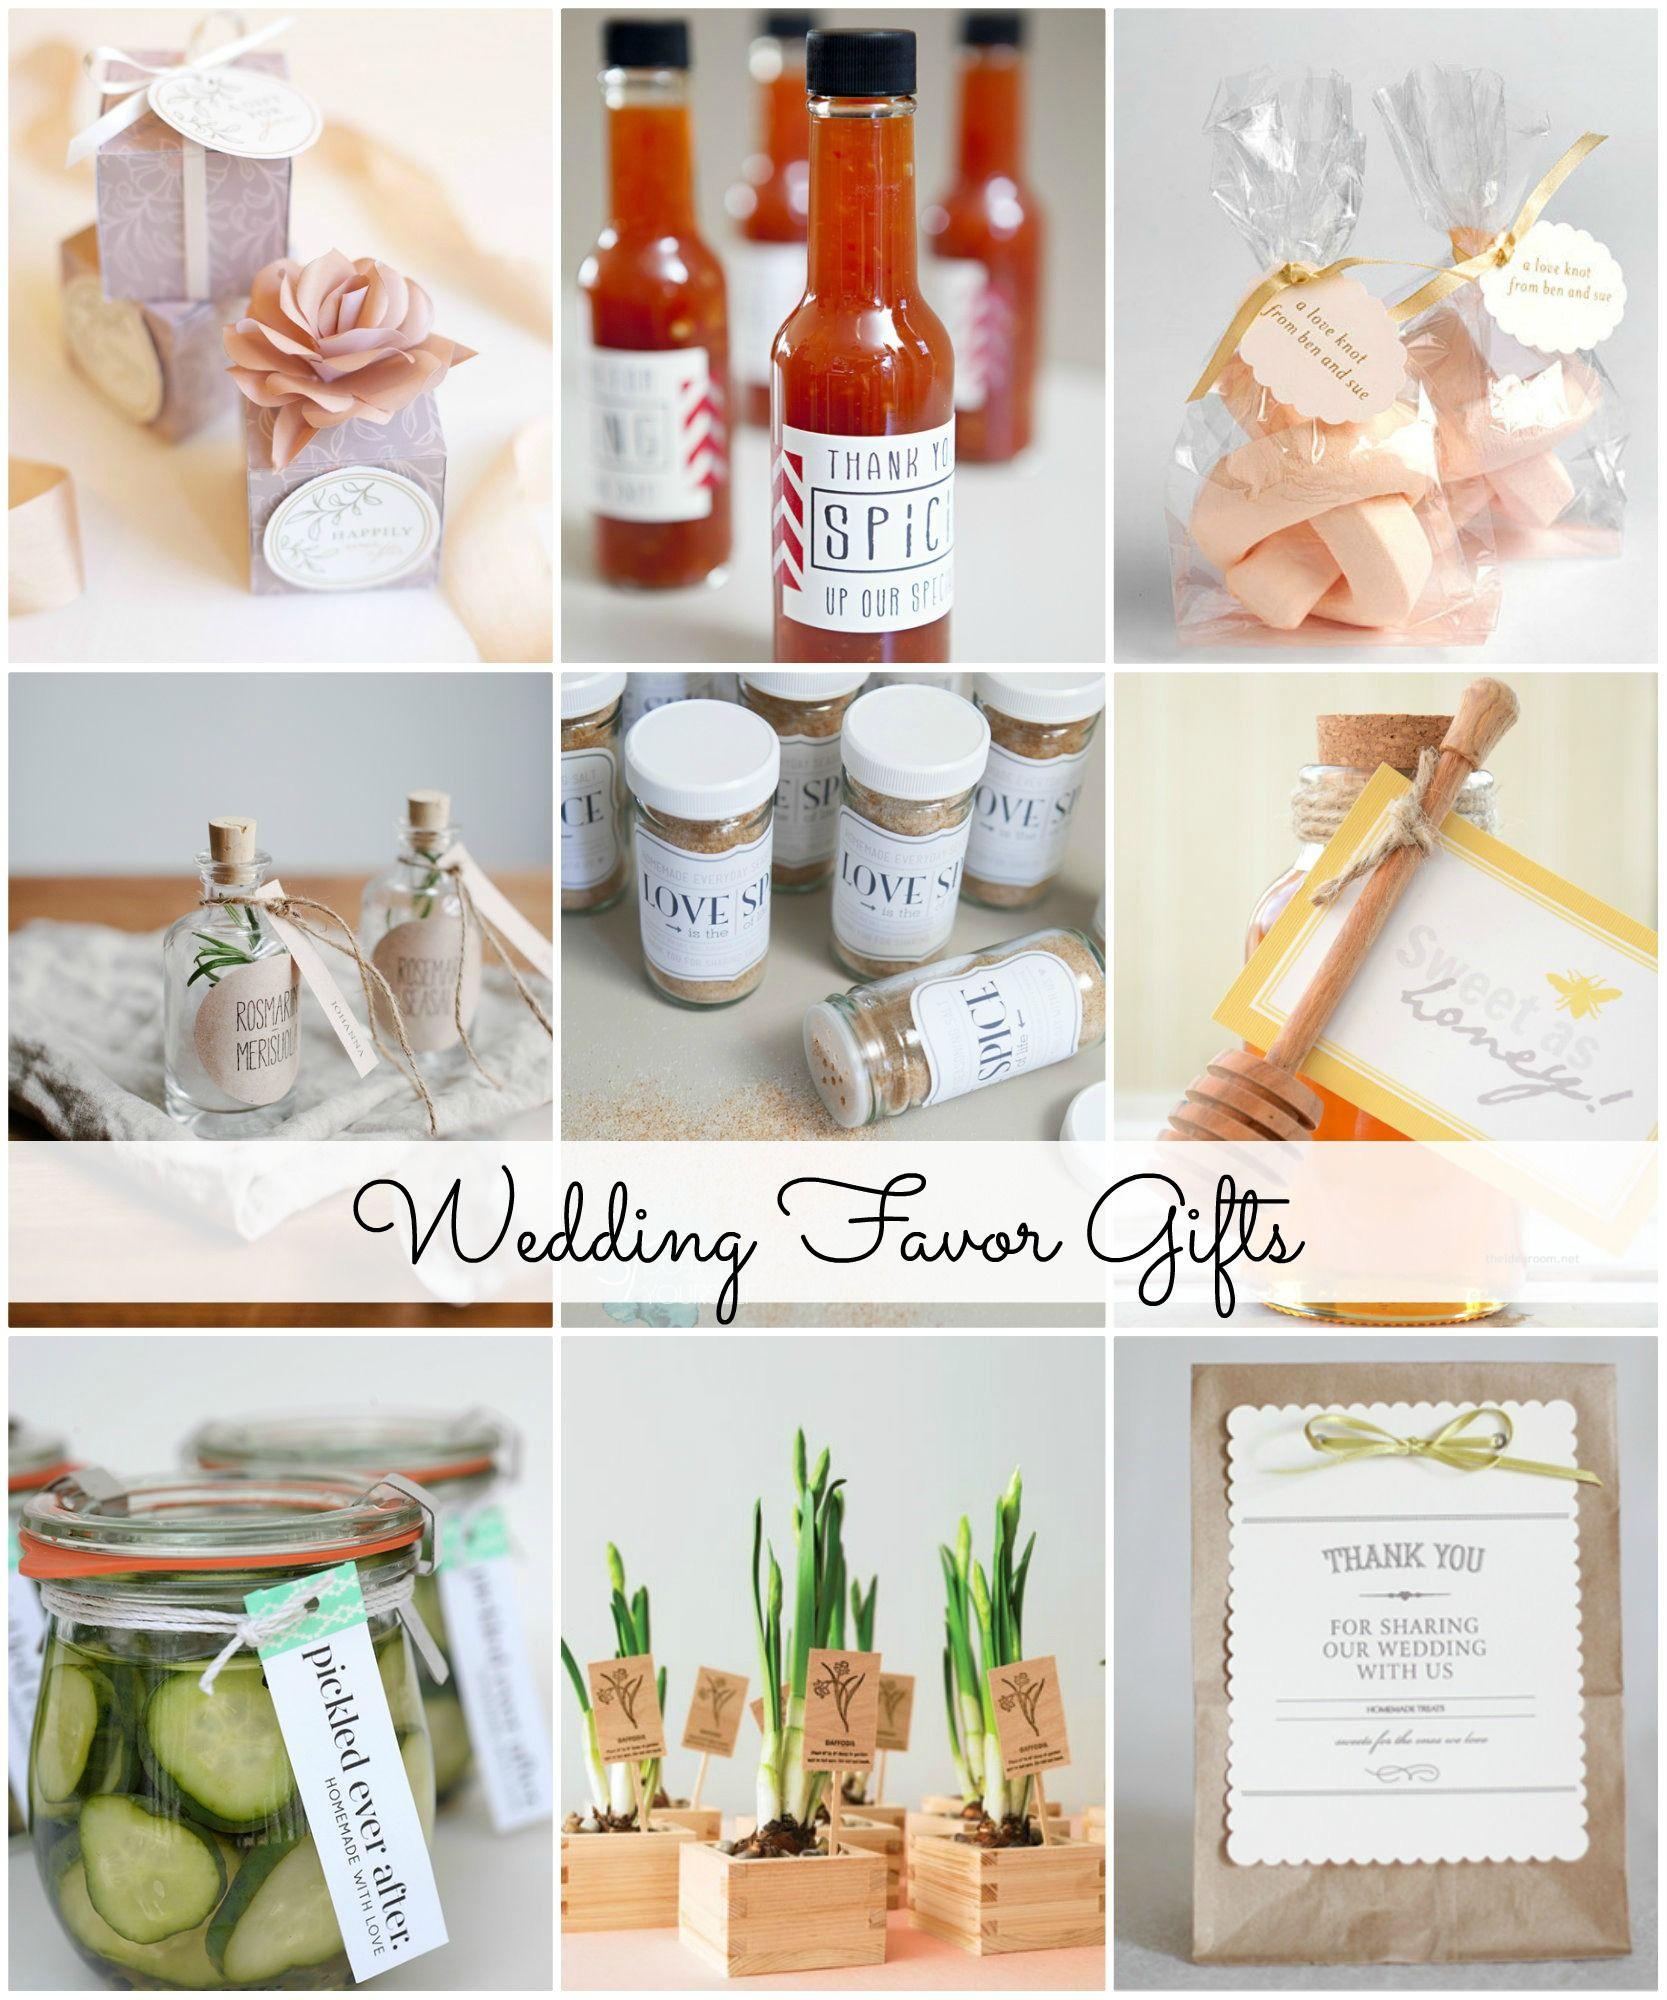 Wedding Favor Gift Ideas | Favors, Gift and Weddings